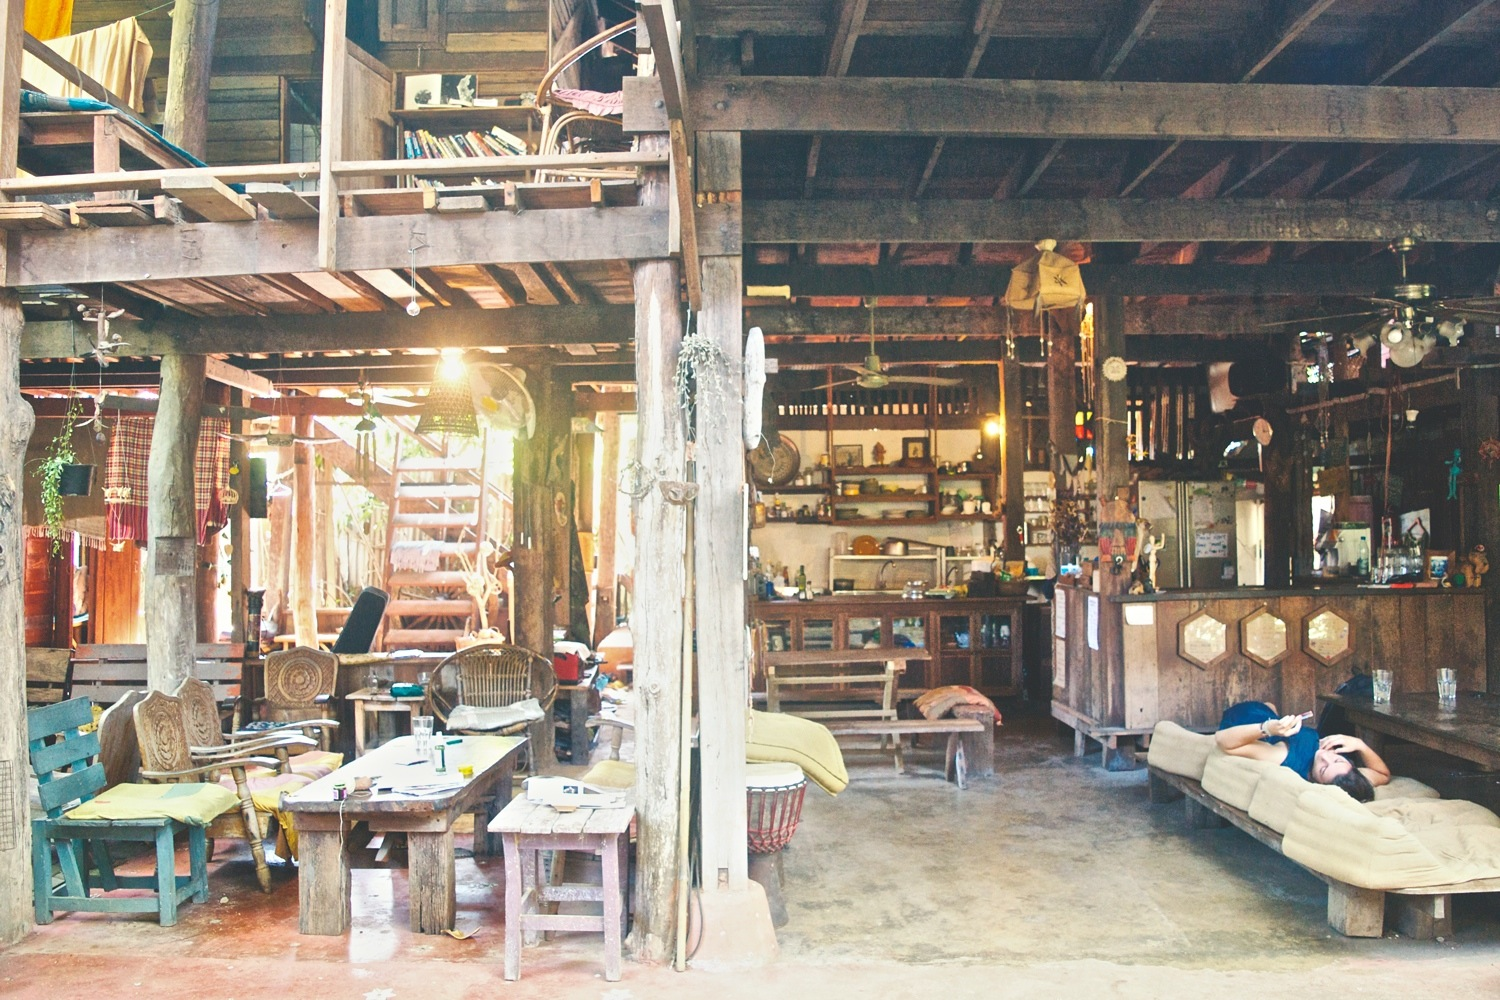 The eclectic, artistic accomodations